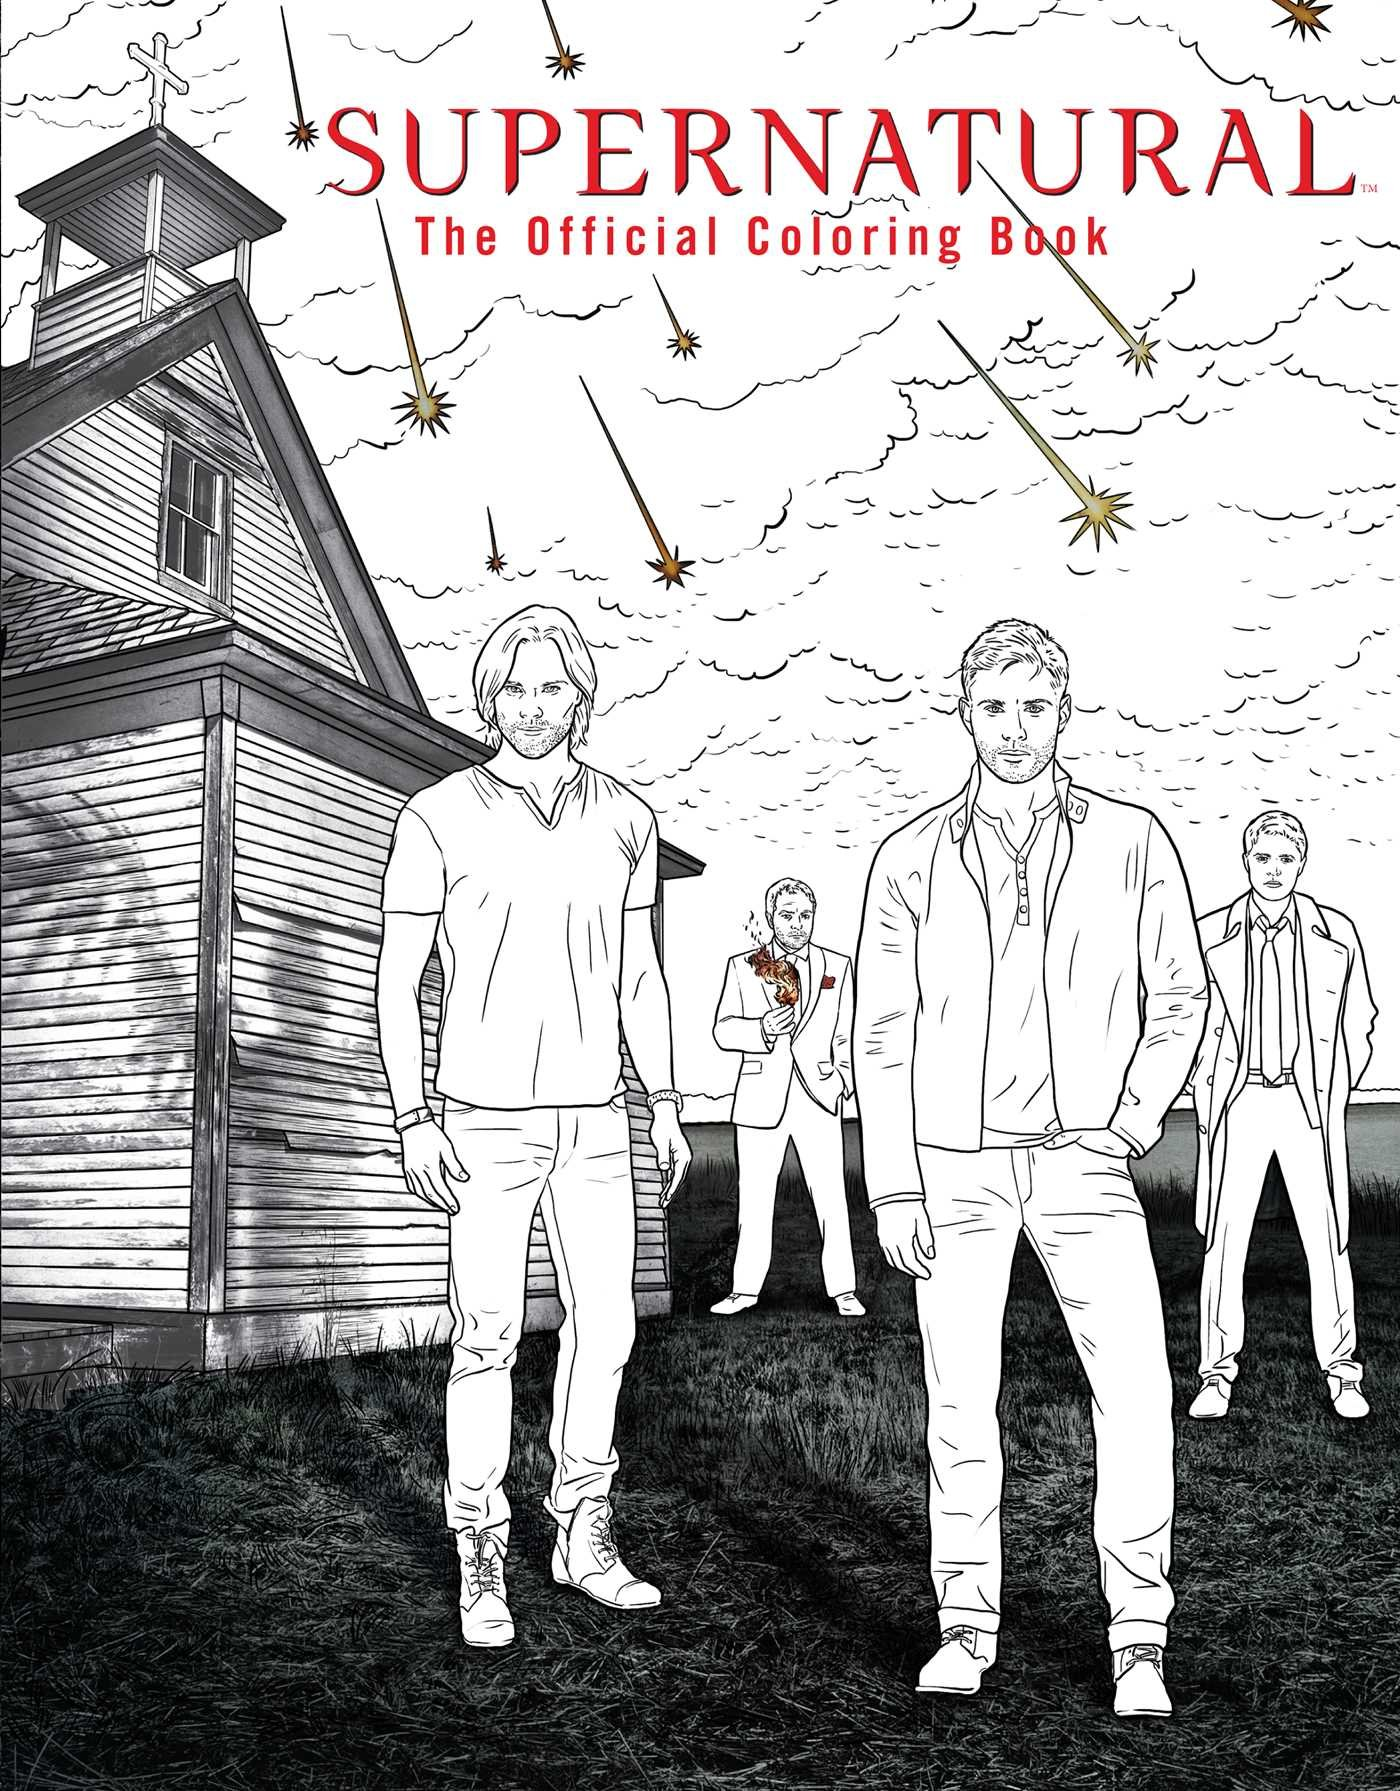 The coloring book full album - Supernatural The Official Coloring Book Insight Editions 9781608878185 Amazon Com Books